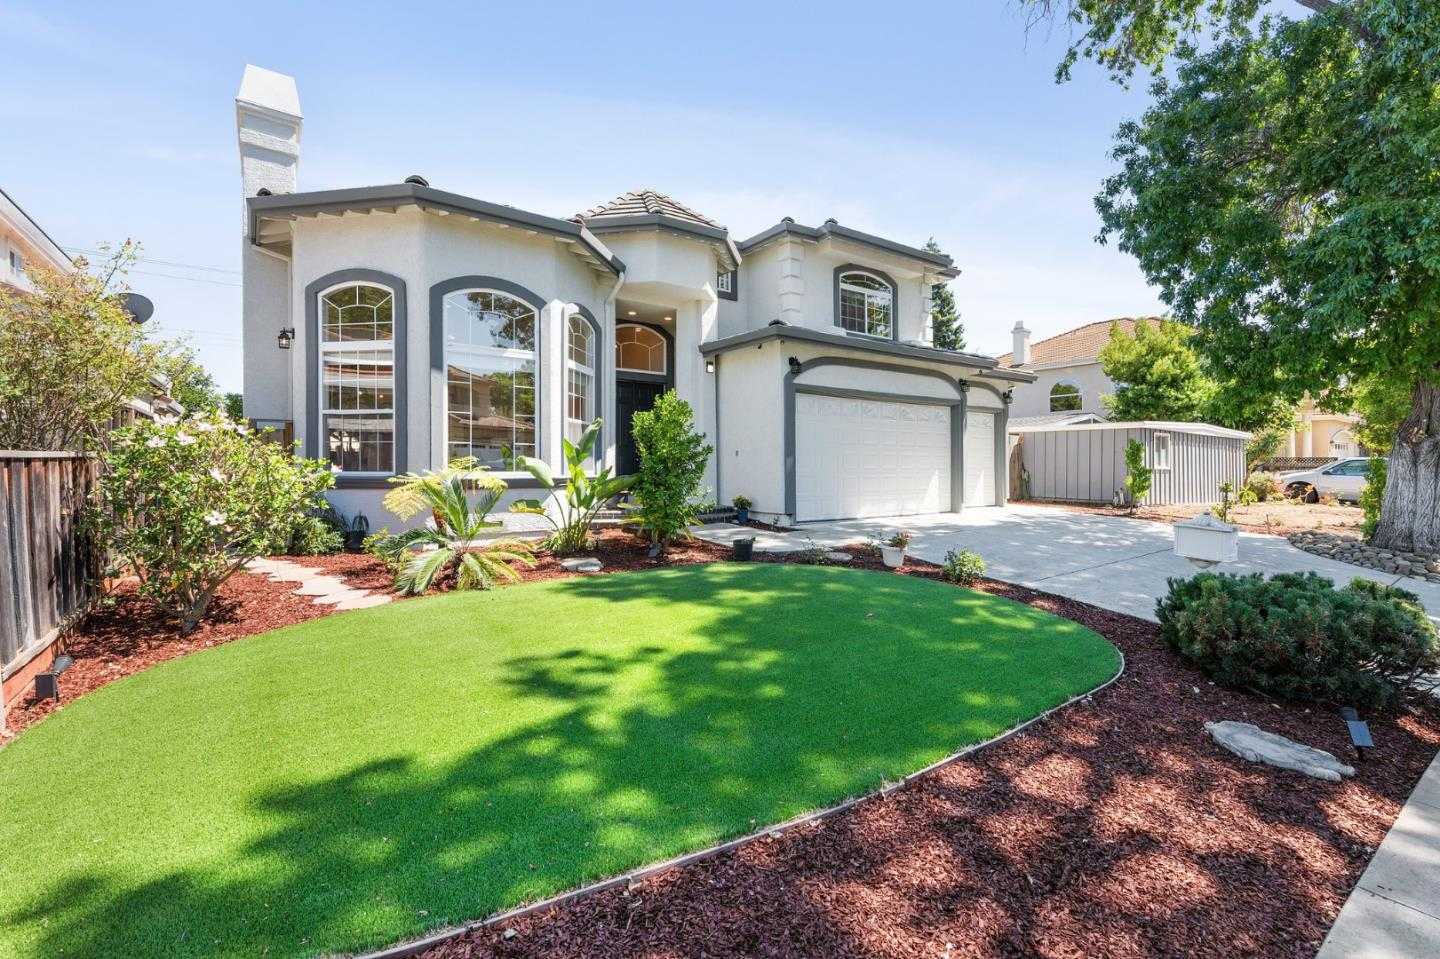 $3,148,000 - 5Br/5Ba -  for Sale in Cupertino